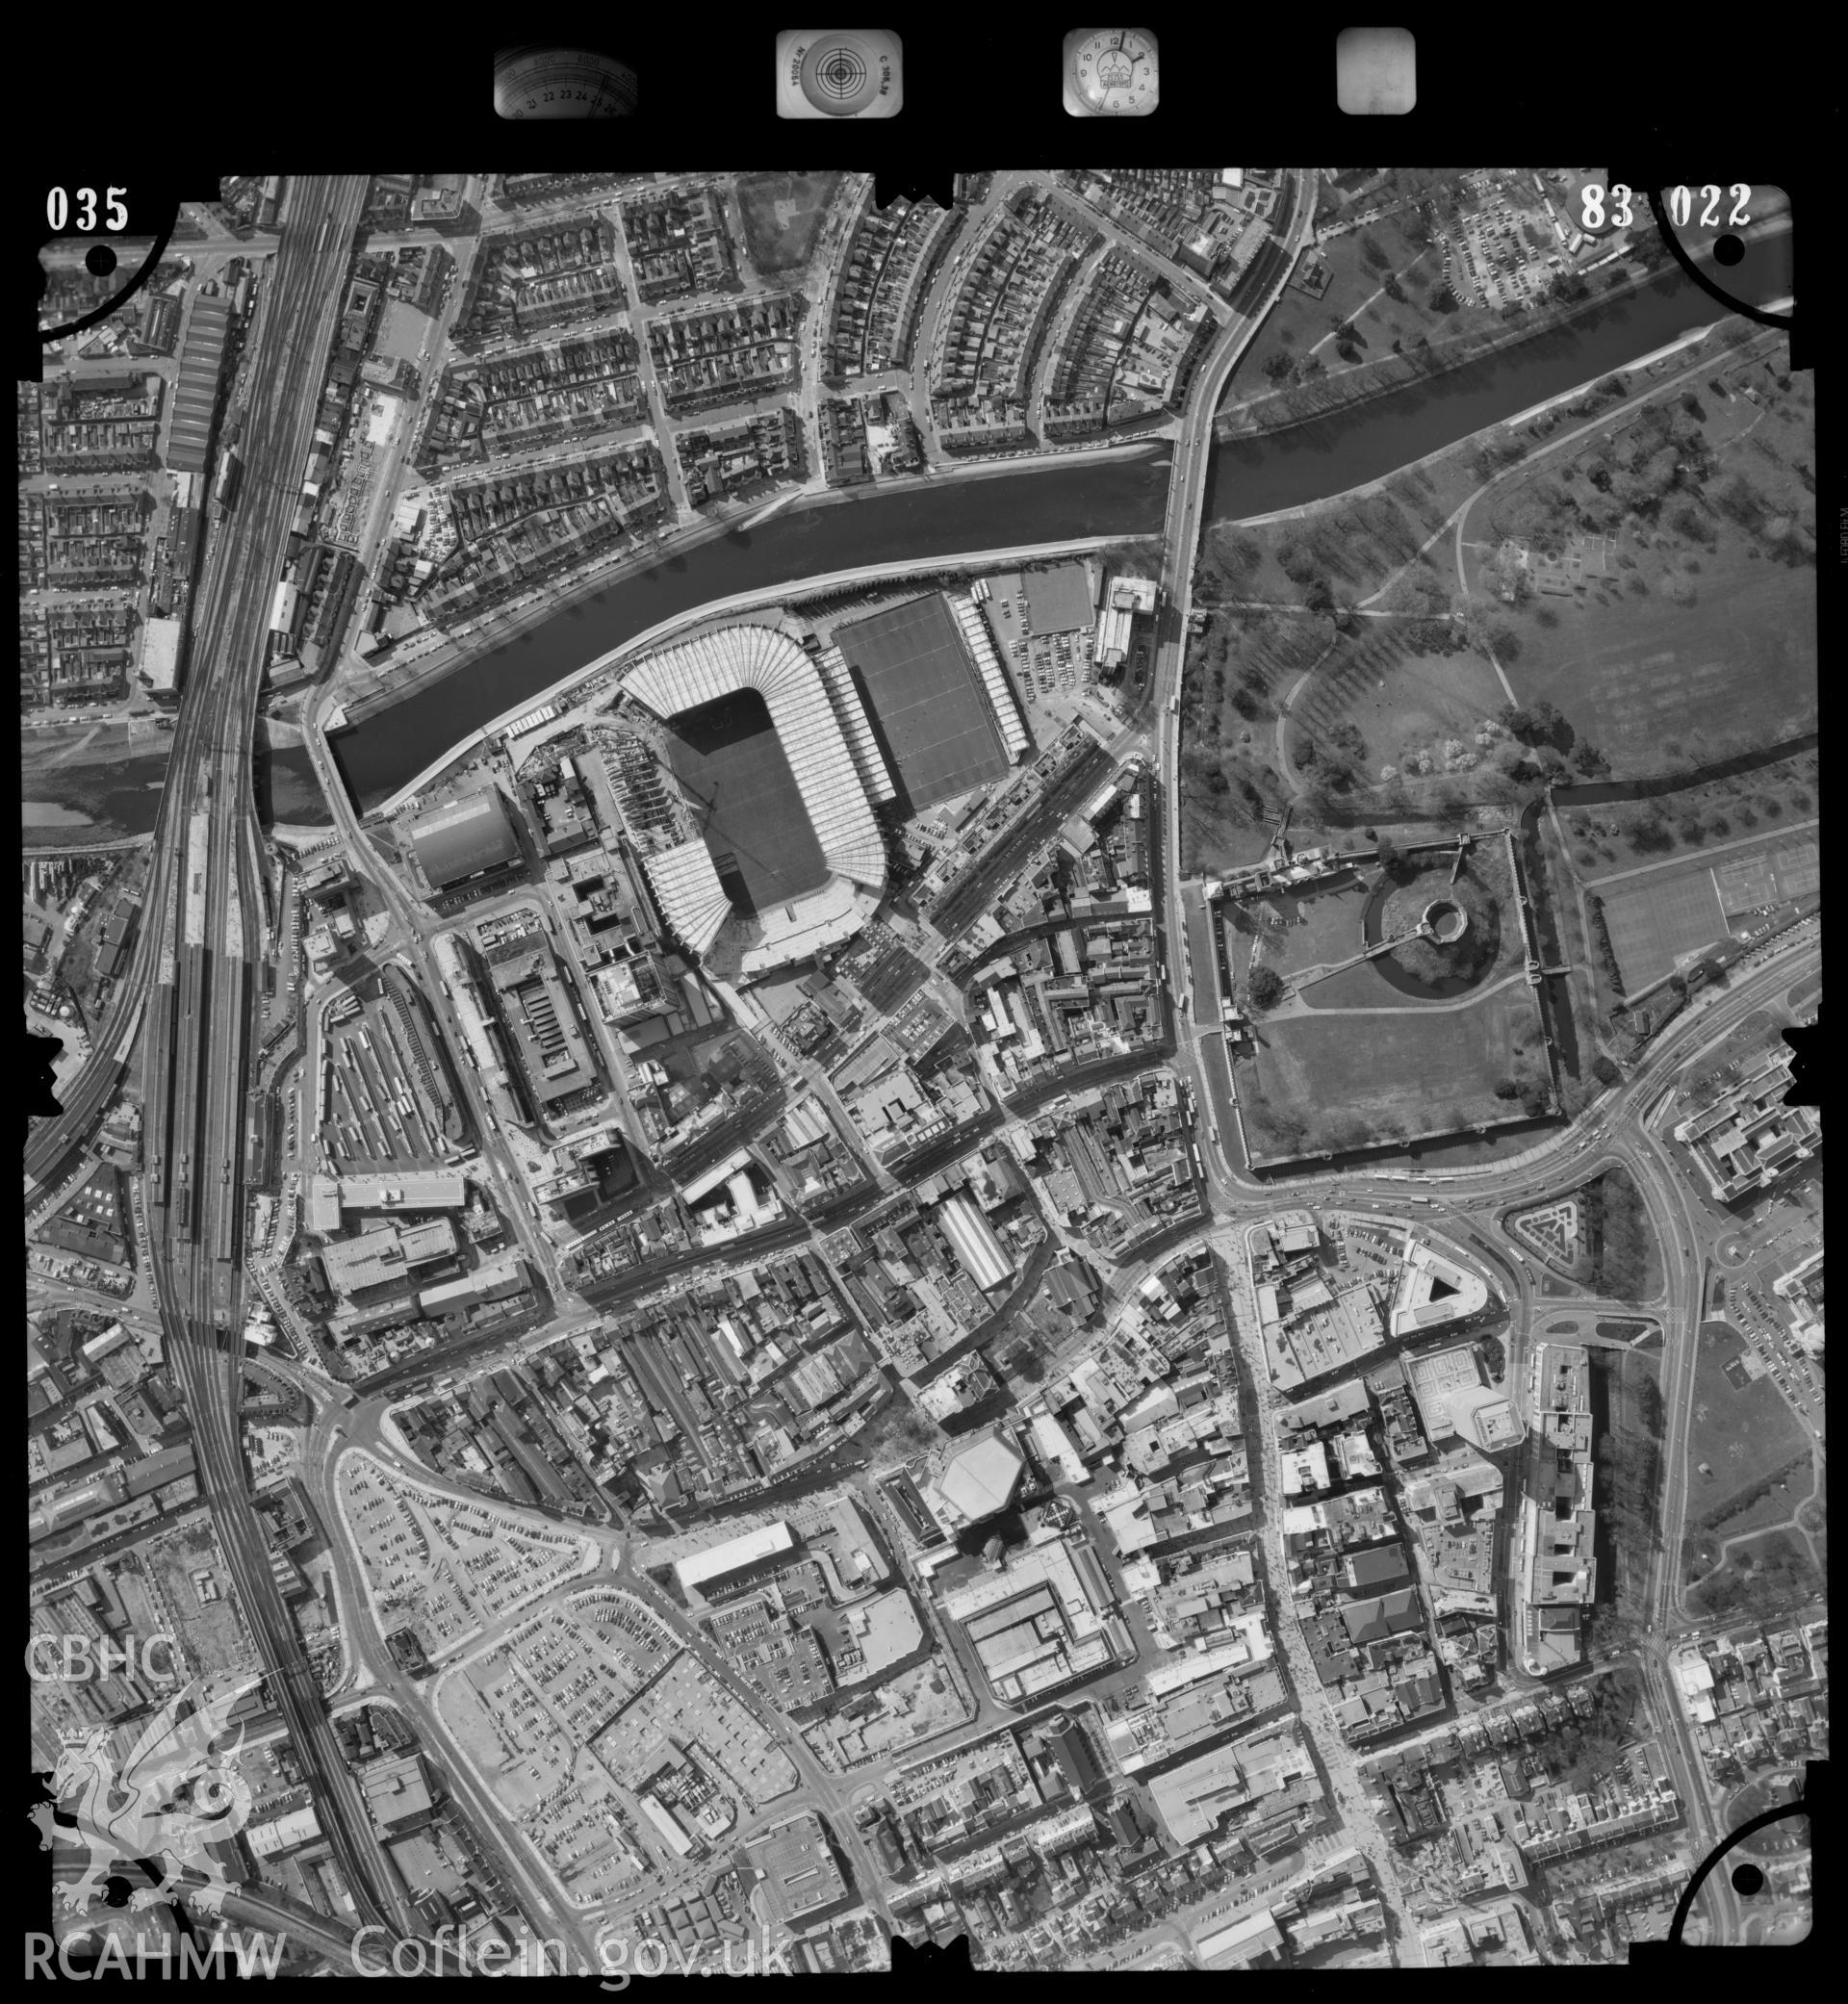 Digitized copy of an aerial photograph showing the Riverside area in Cardiff, taken by Ordnance Survey, 1983.